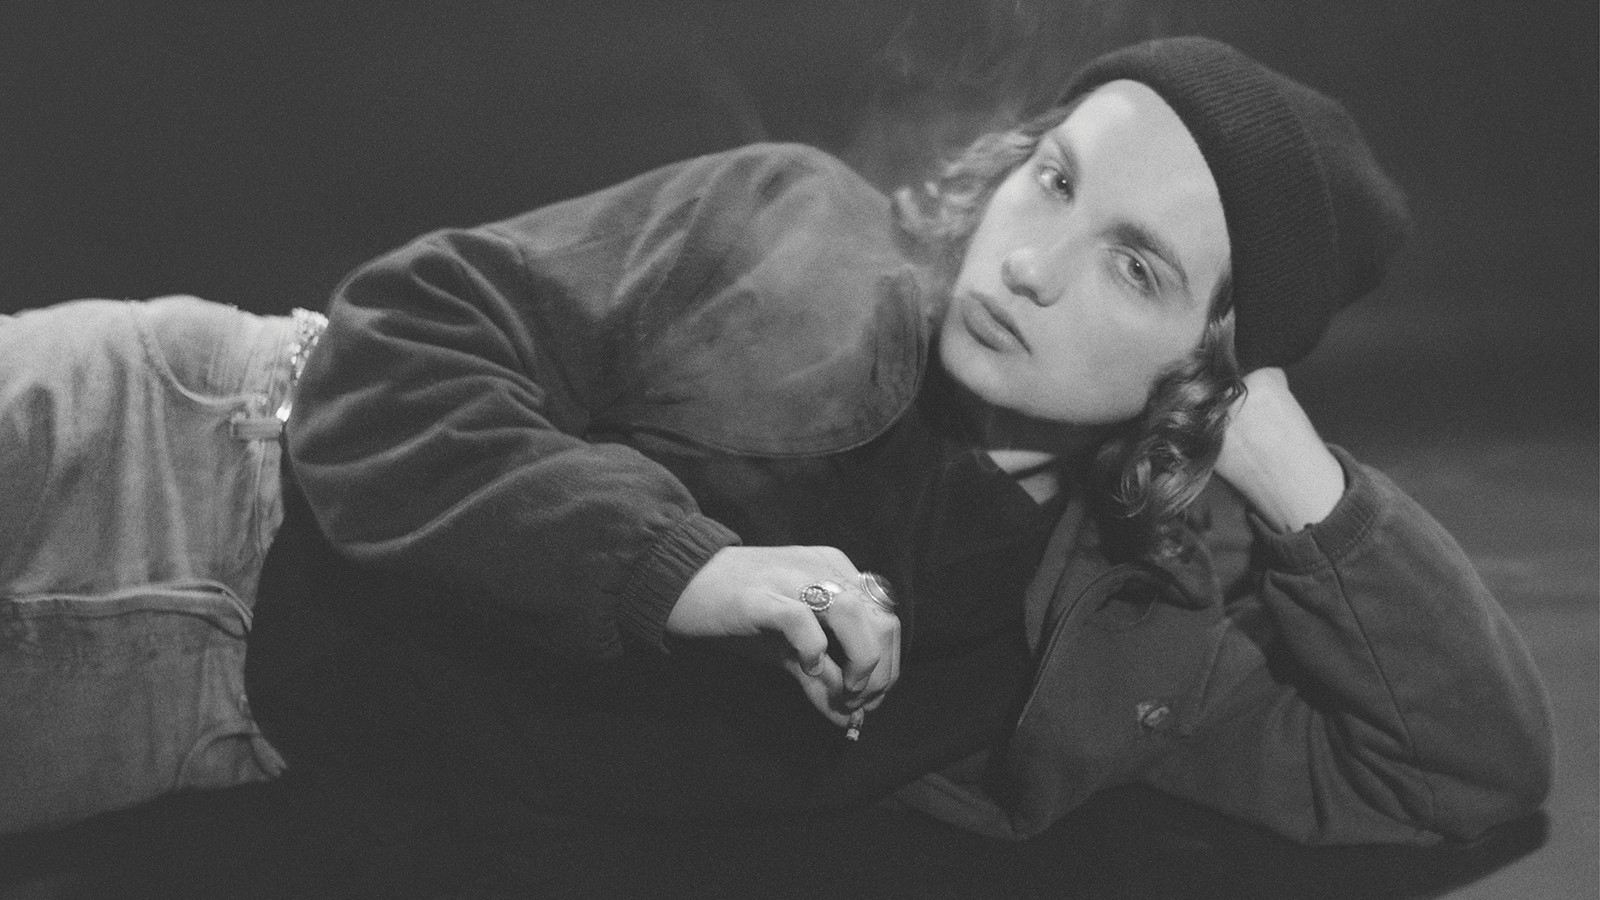 _larryclark-longread2-1